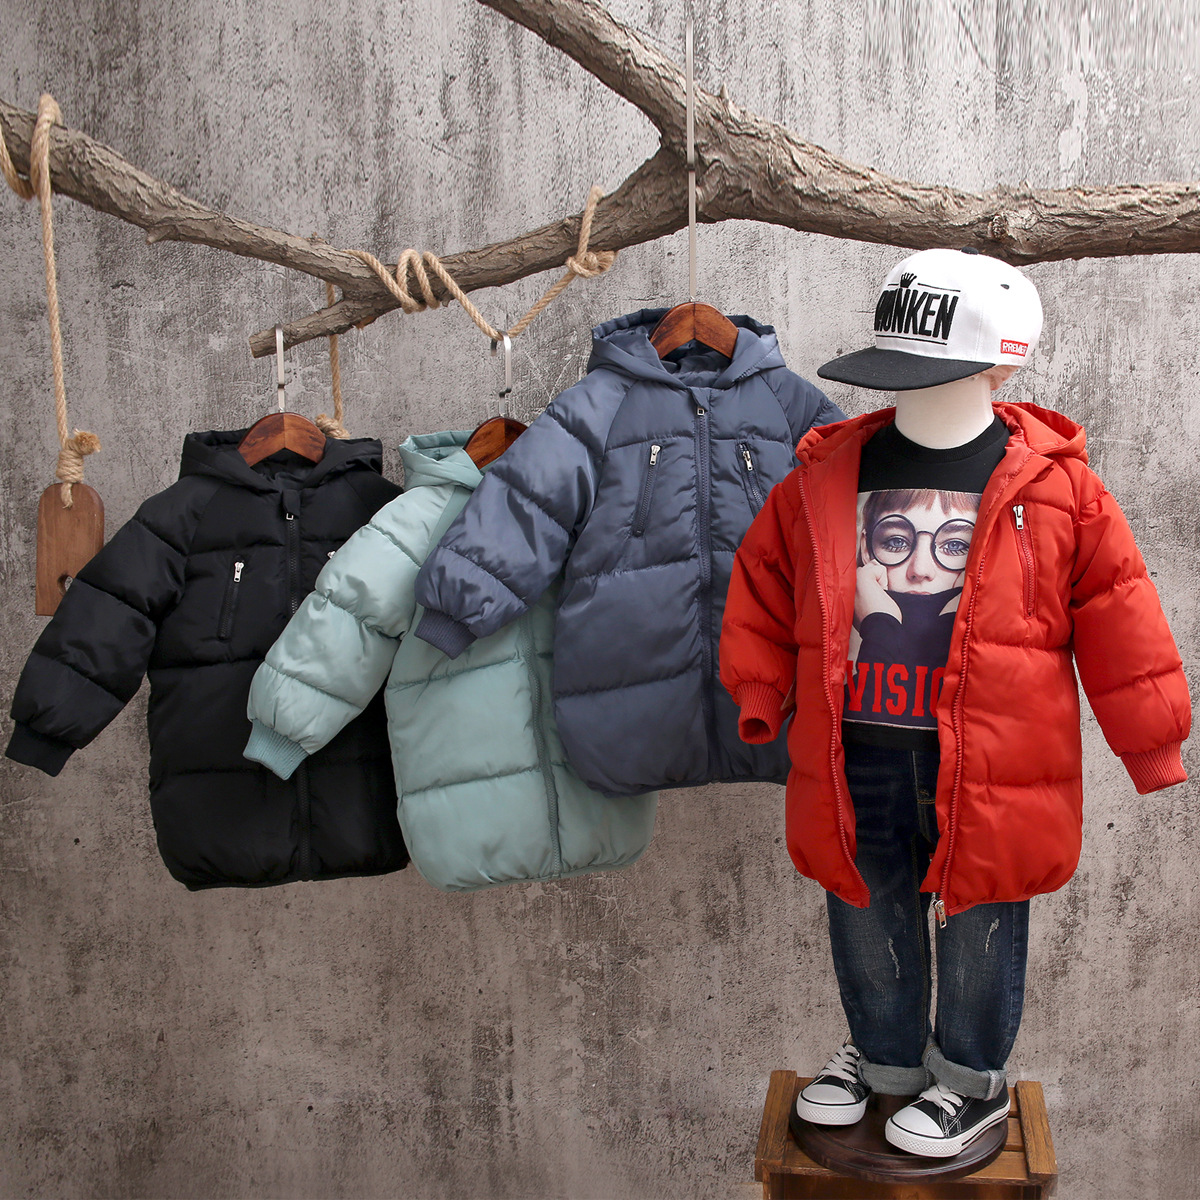 Winter Boy Down Jackets for Boys Children's Coat Clothing Kids Hooded Thick Cotton Padded Warm Jacket Parka Long Overcoat 2018 new fashion winter jacket men long thick warm cotton padded jackets coat parka overcoat casual outwear jacket plus size 6xl